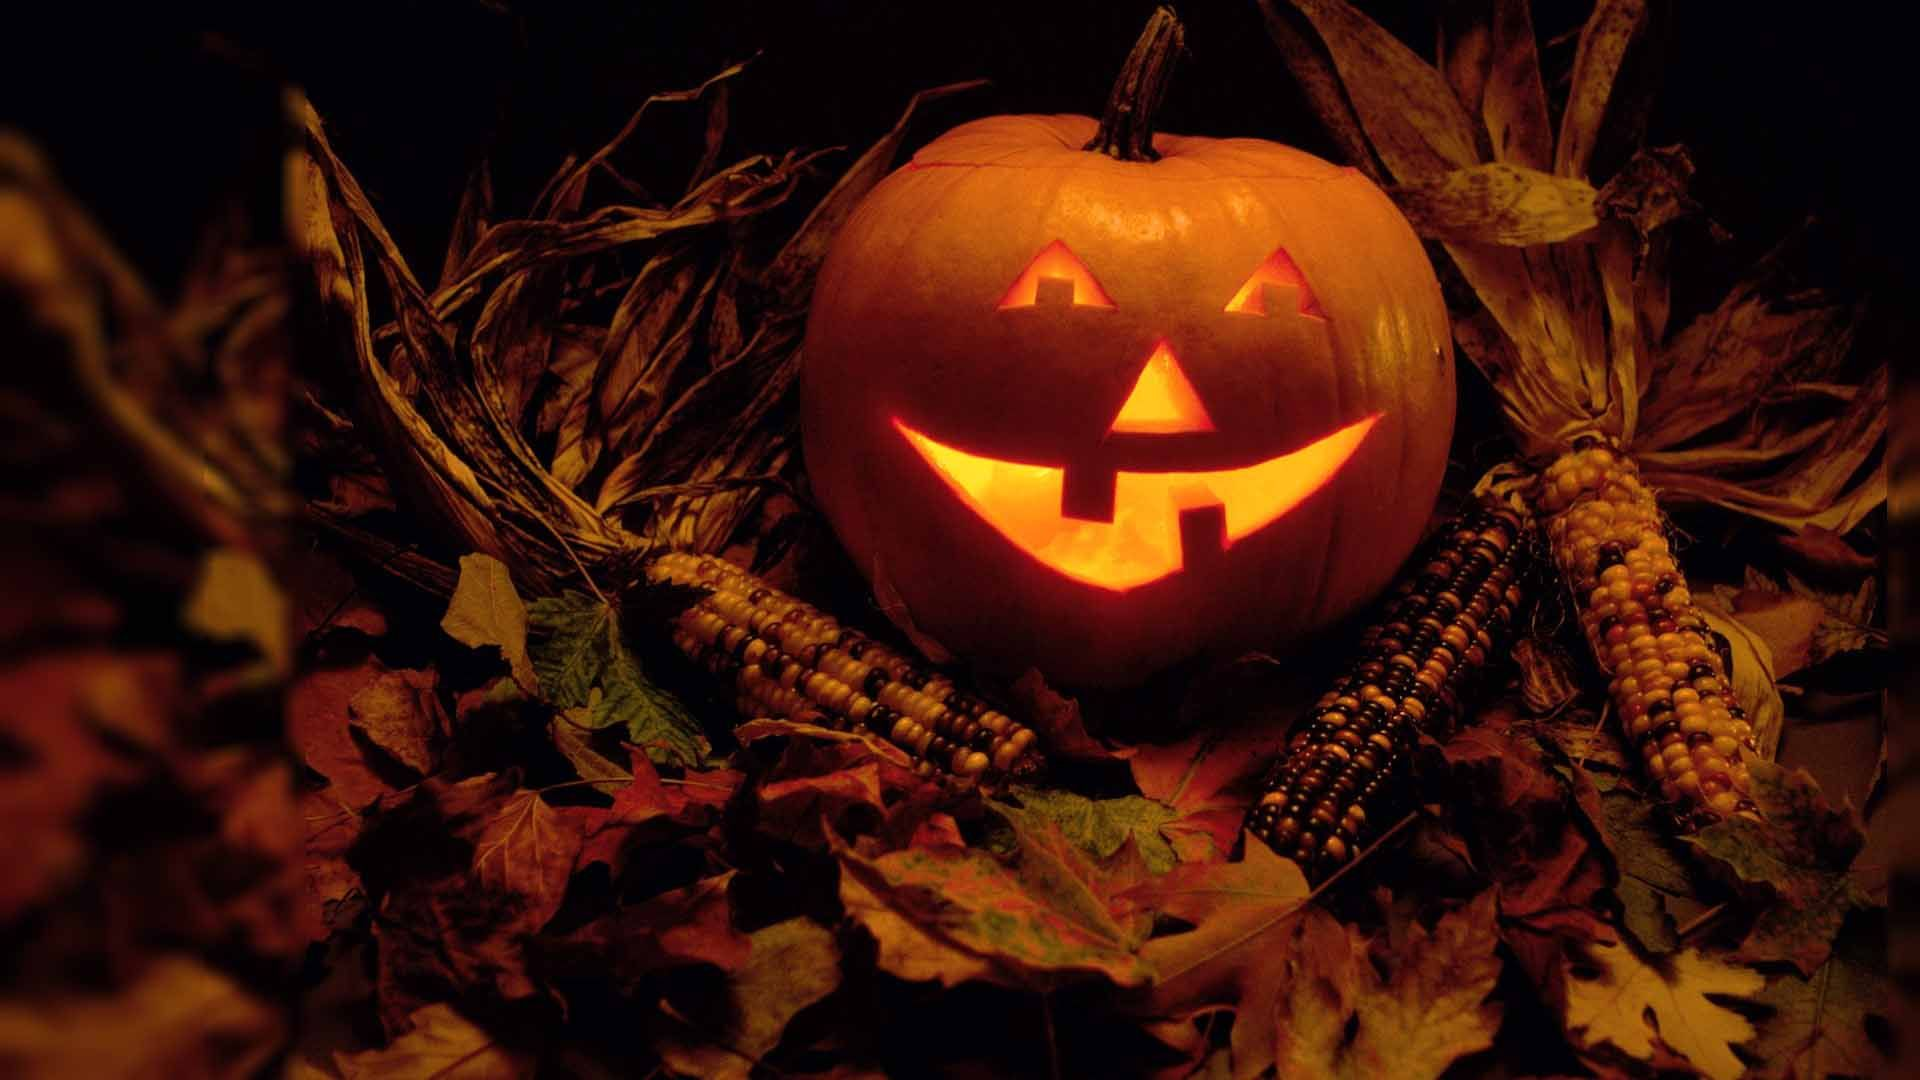 Download The Latest Happy Halloween Hd Images Wallpapers Pictures Photos Free Halloween Wallpaper Scary Halloween Pumpkins Halloween Desktop Wallpaper